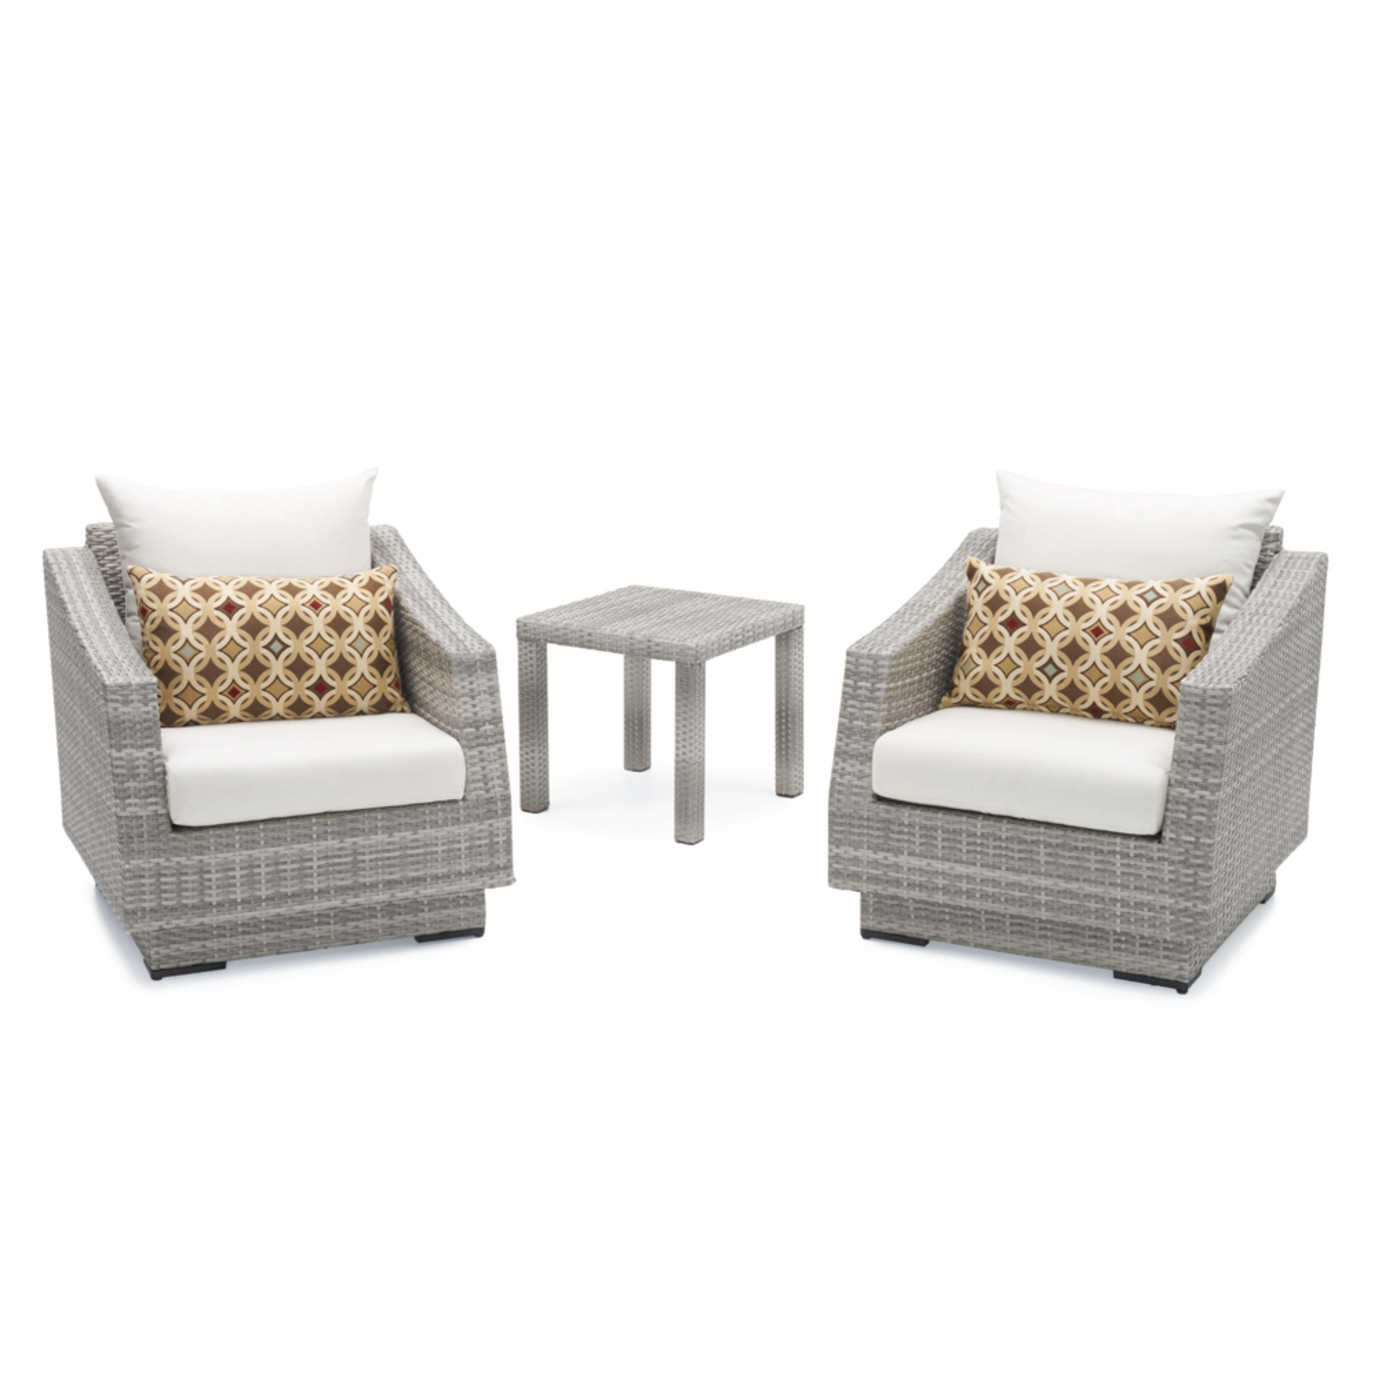 Cannes™ Club Chairs and Side Table - Moroccan Cream